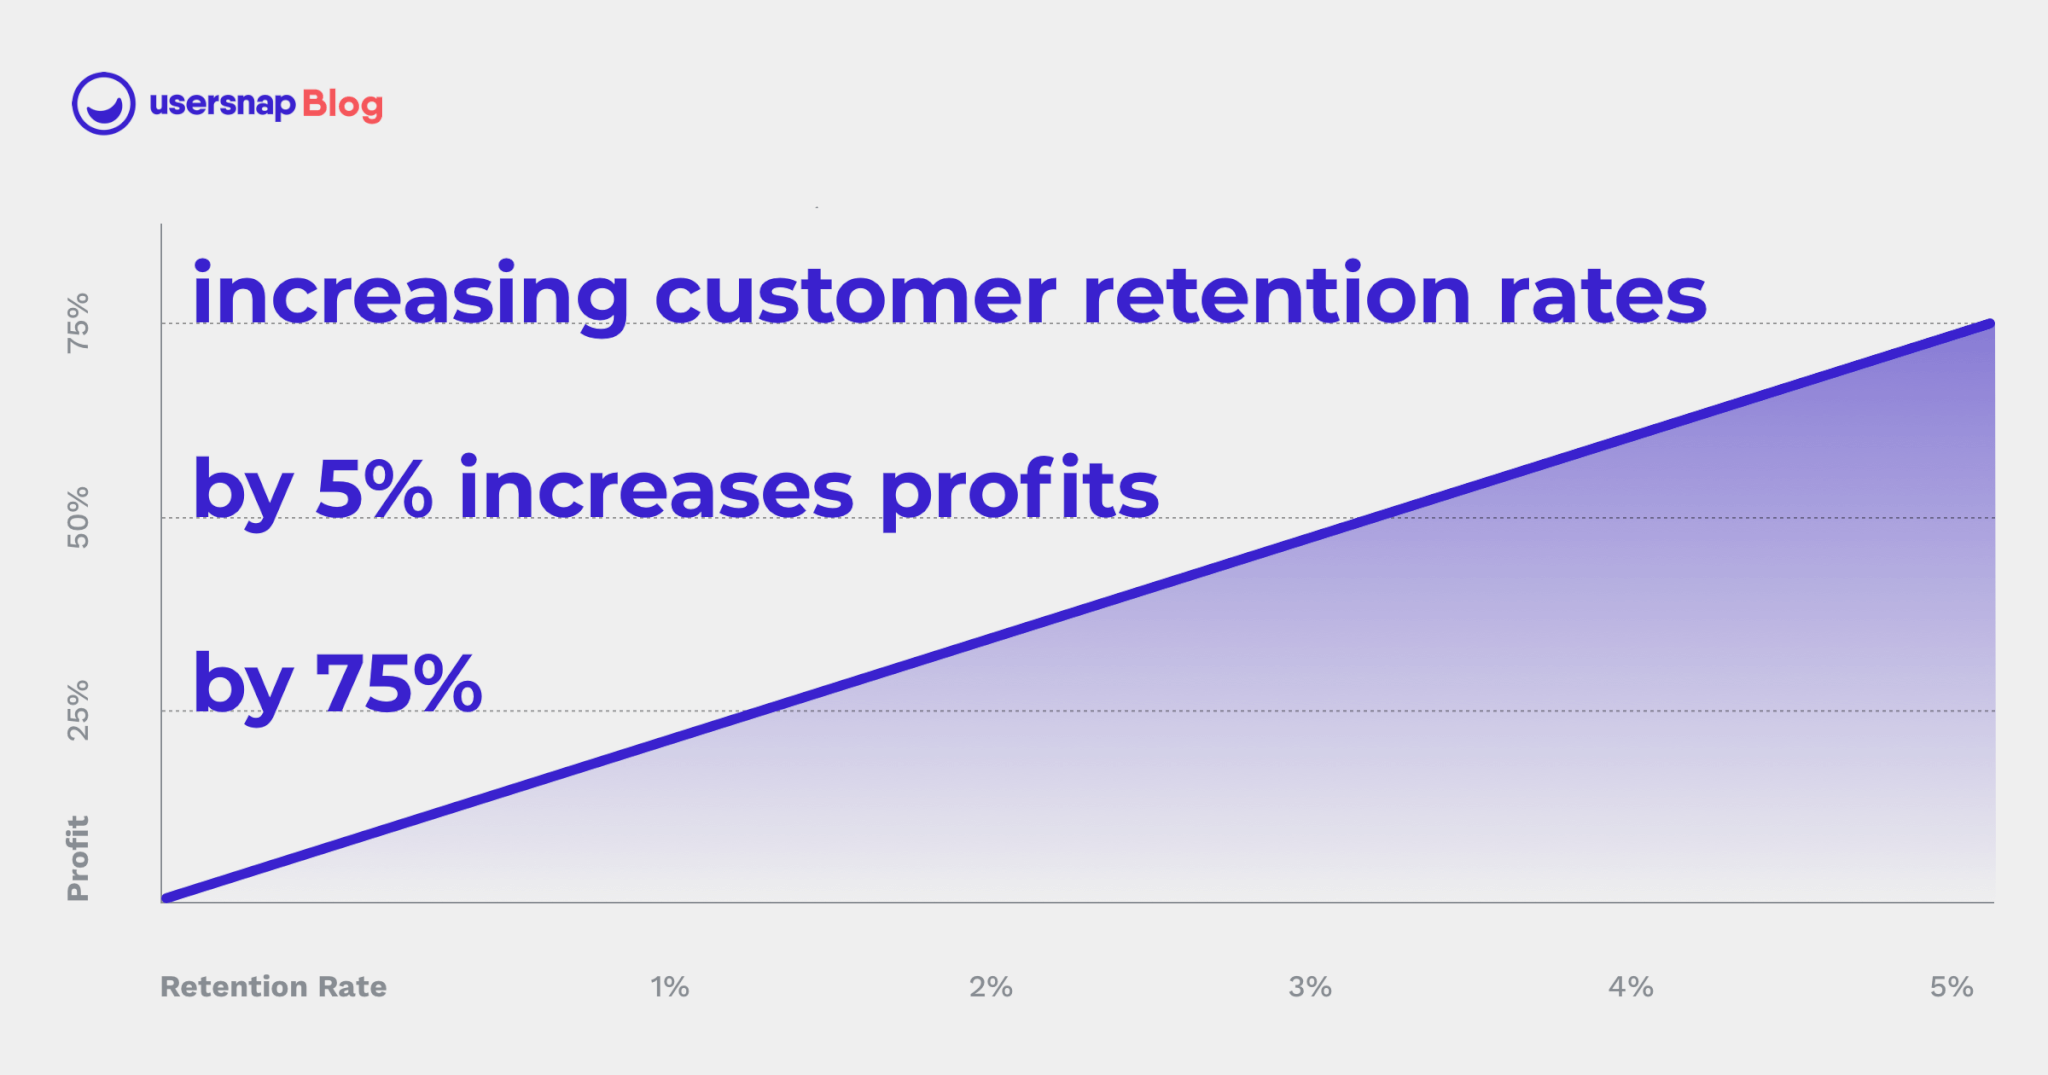 Increasing Customer Retention by 5% can increase profits by 75% Usersnap Blog